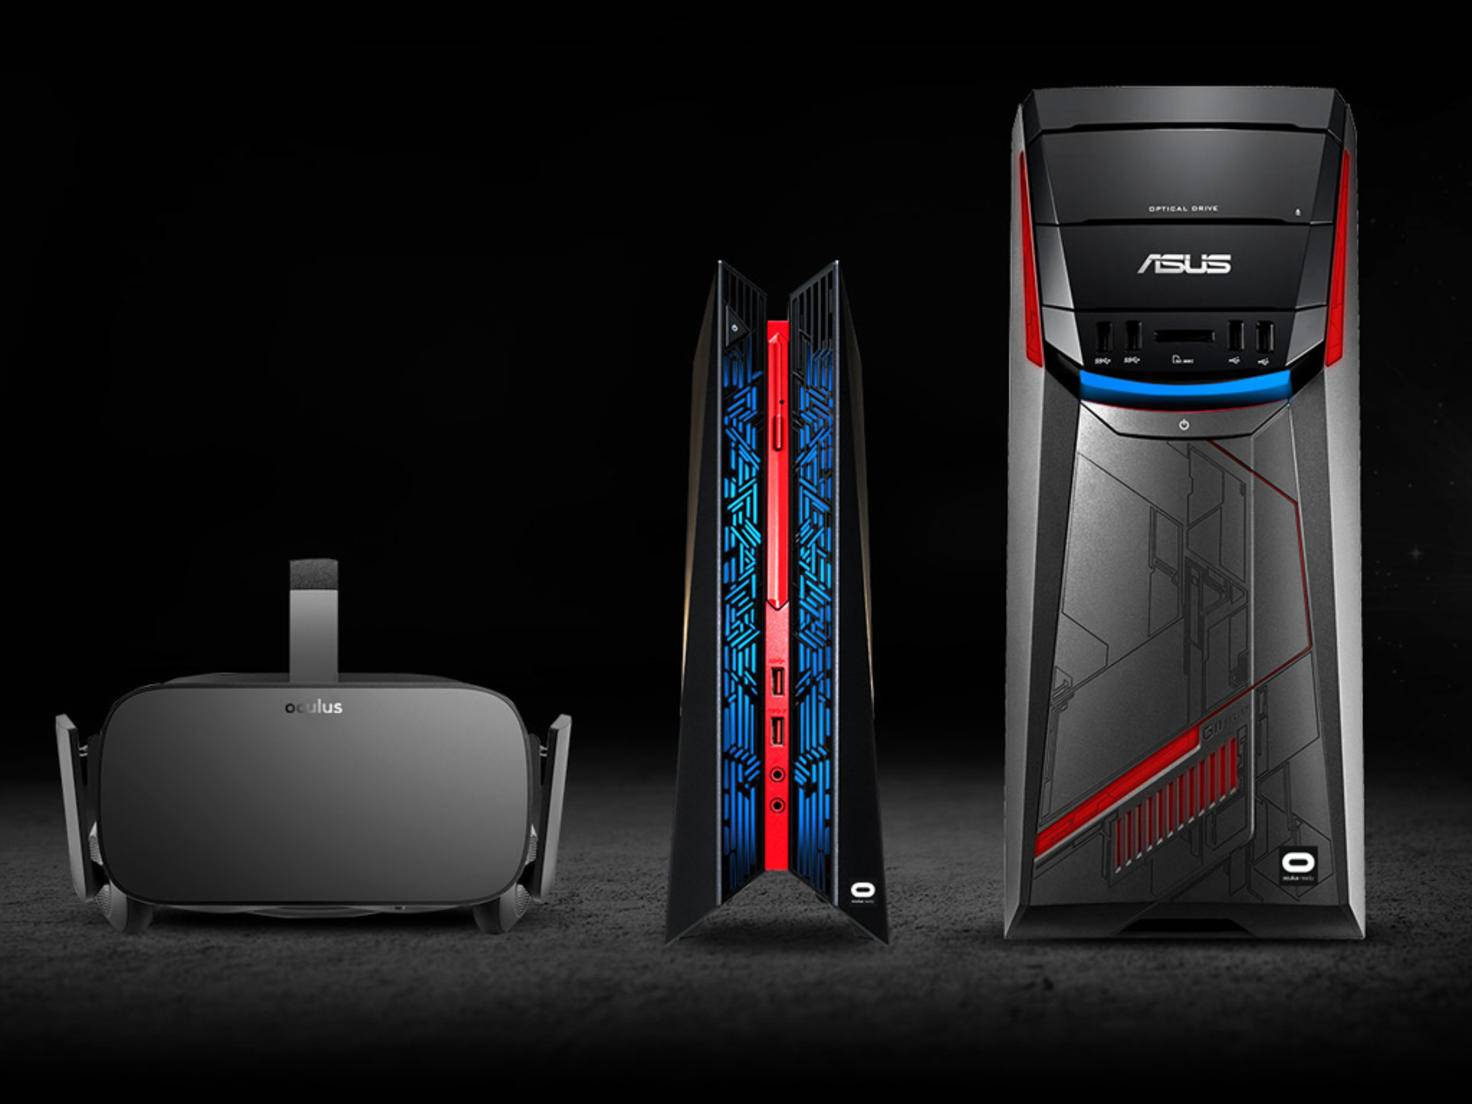 Asus_Oculus_ready